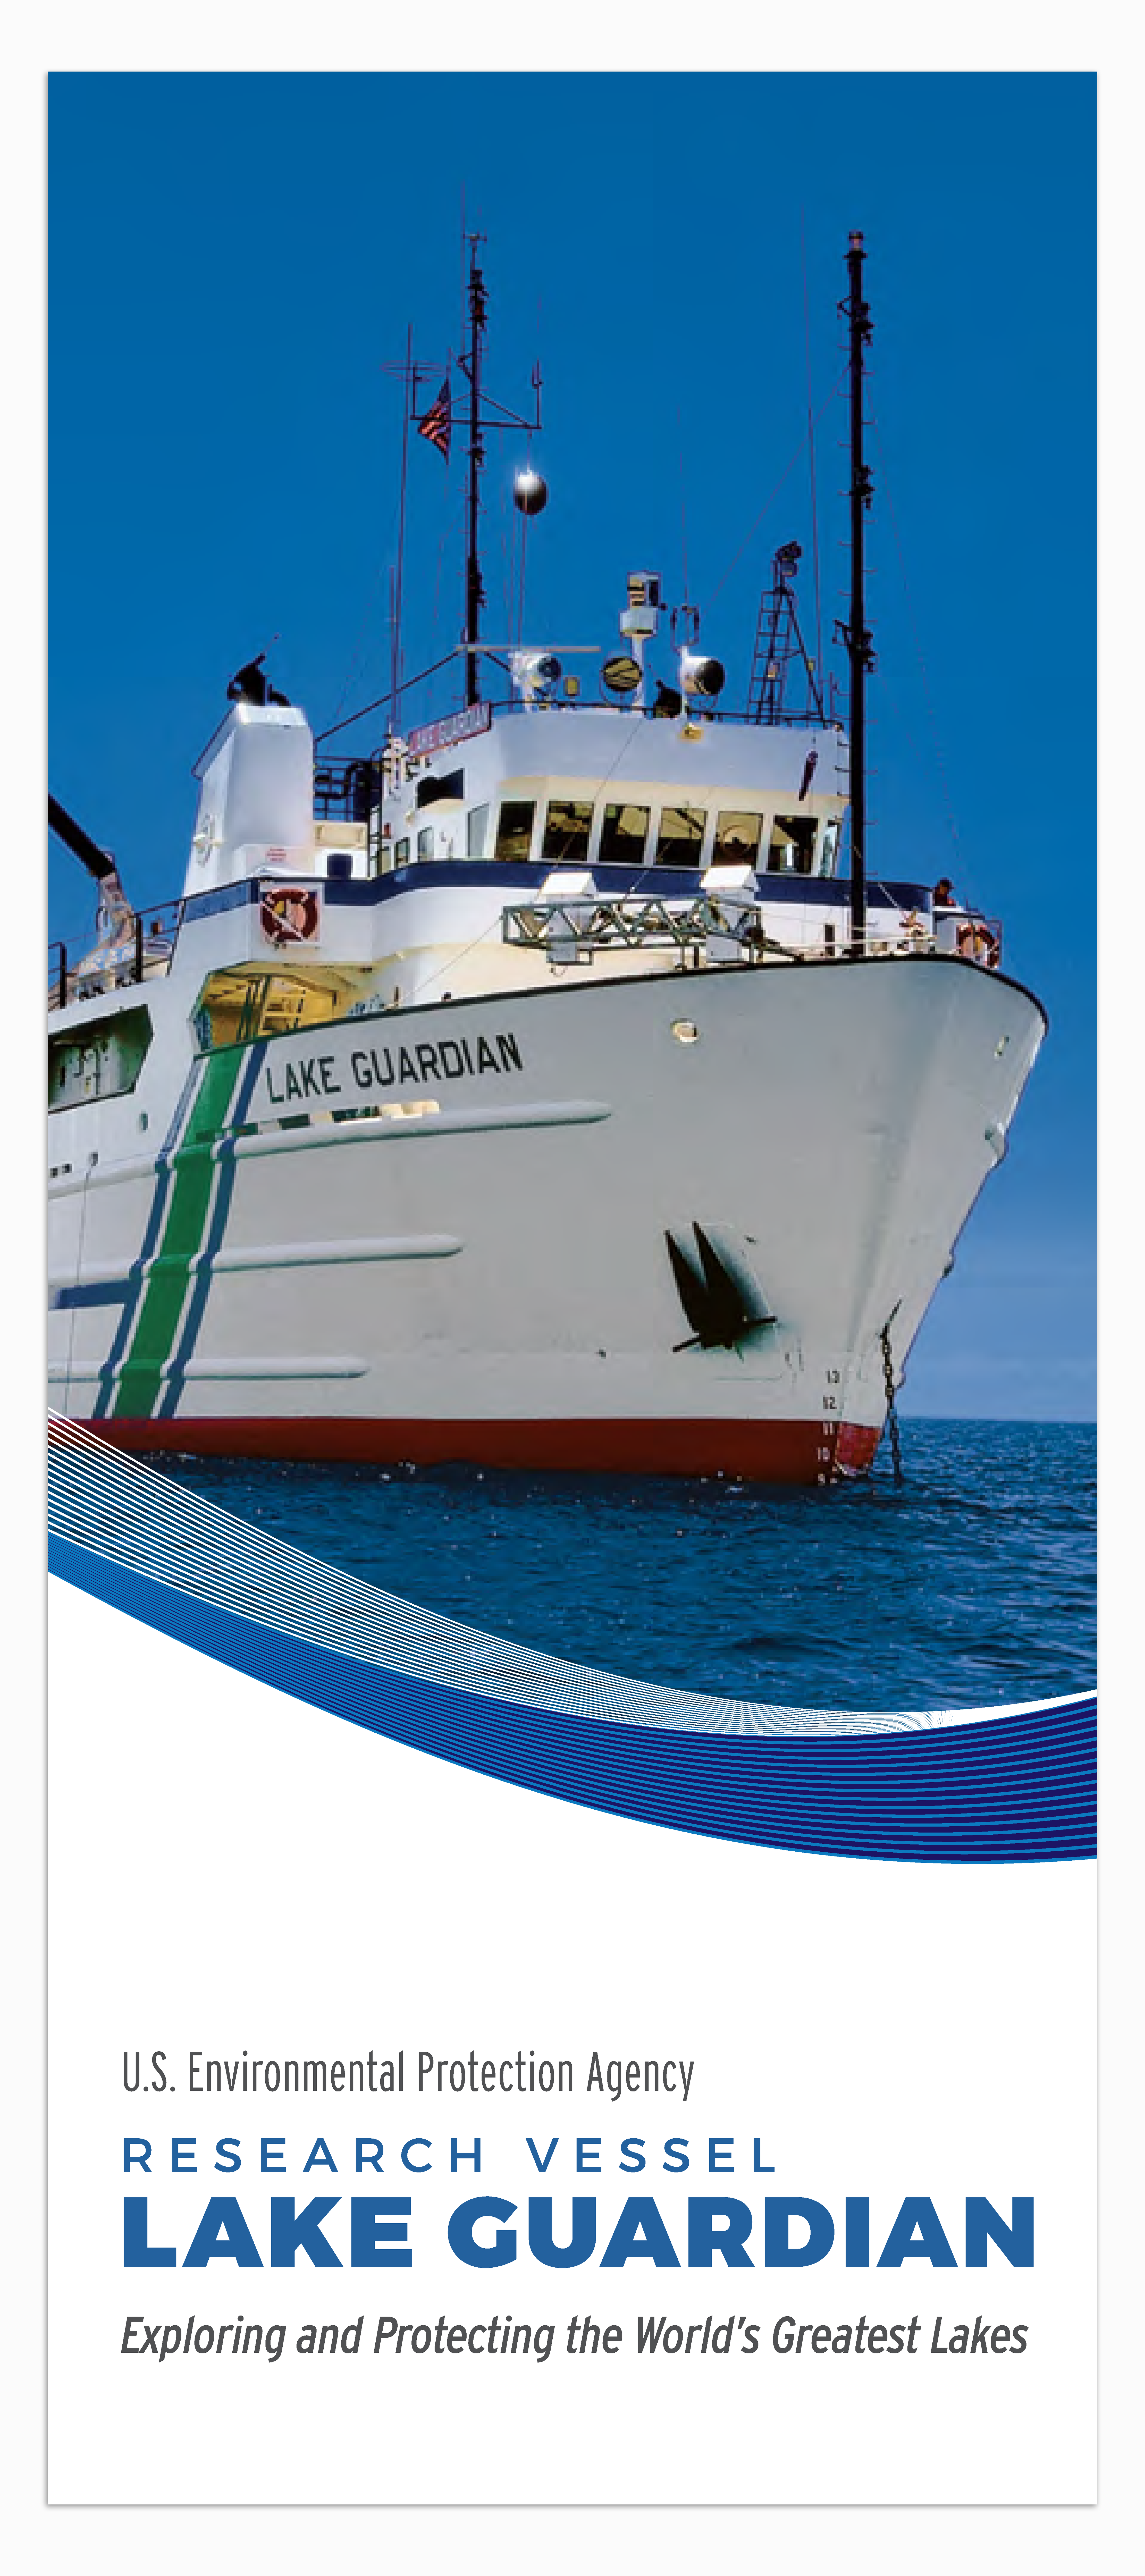 R/V Lake Guardian Brochure Thumbnail